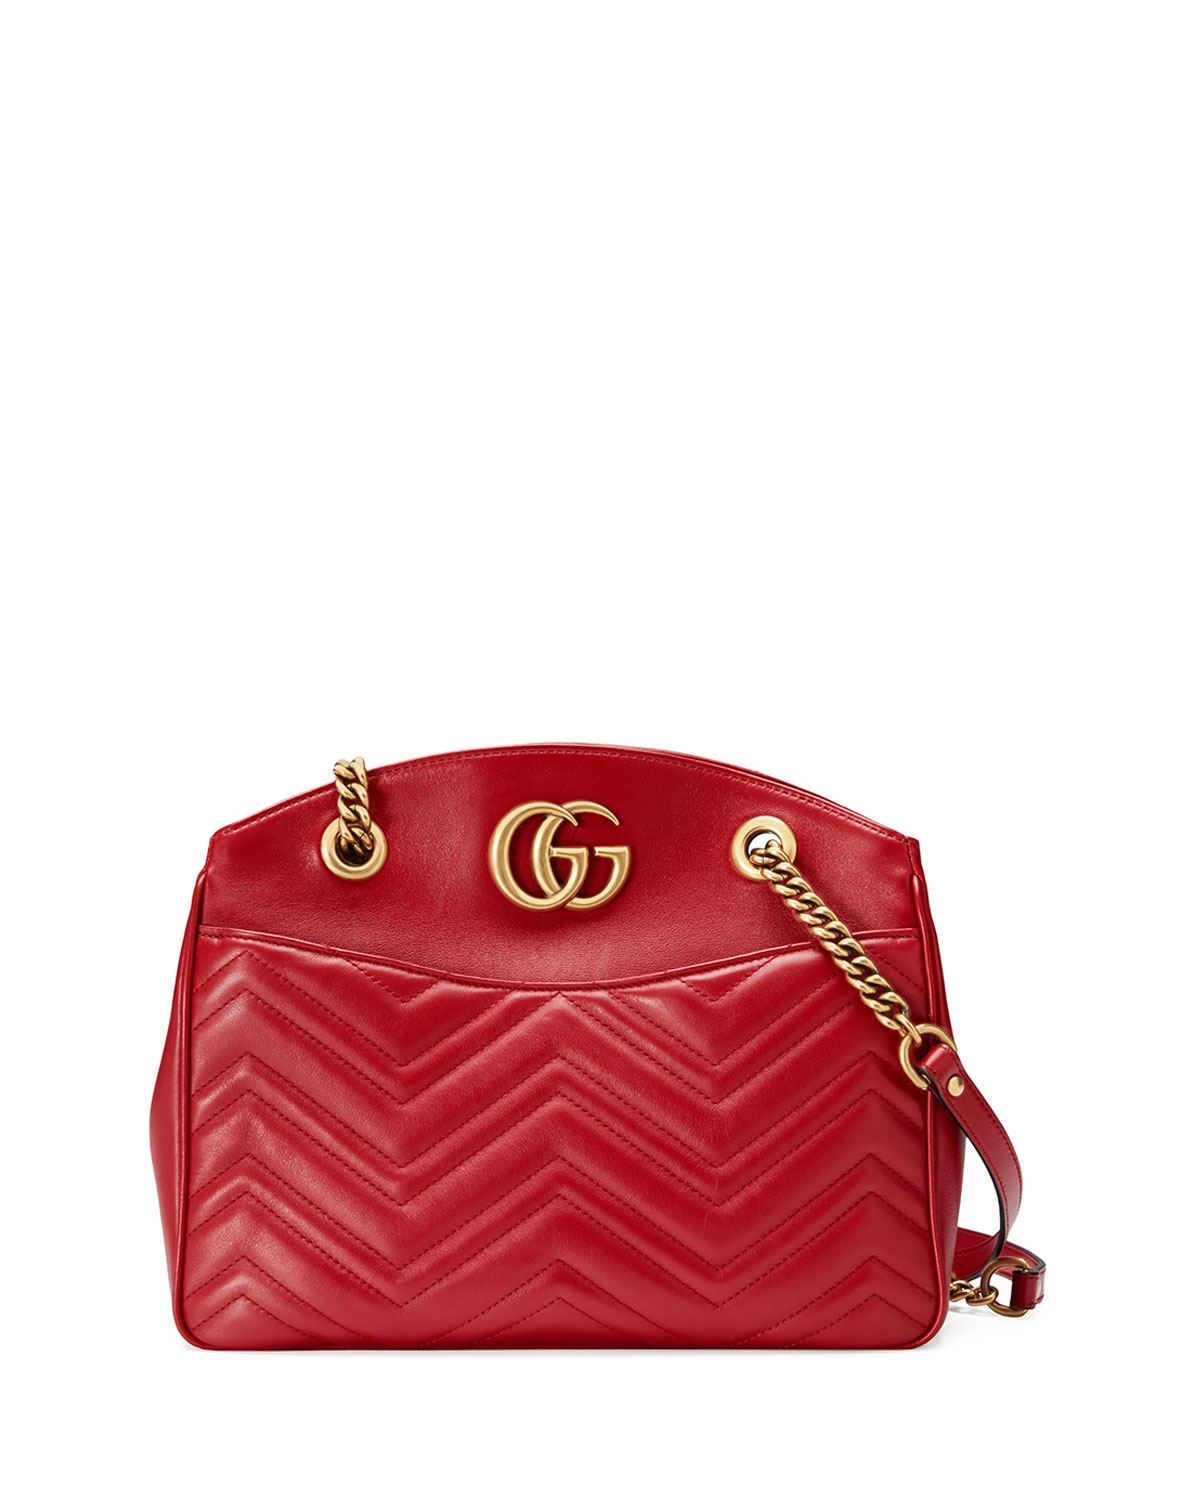 3e5efa1018ed Gucci GG Marmont 2.0 Medium Quilted Shoulder Bag, Red | Neiman Marcus